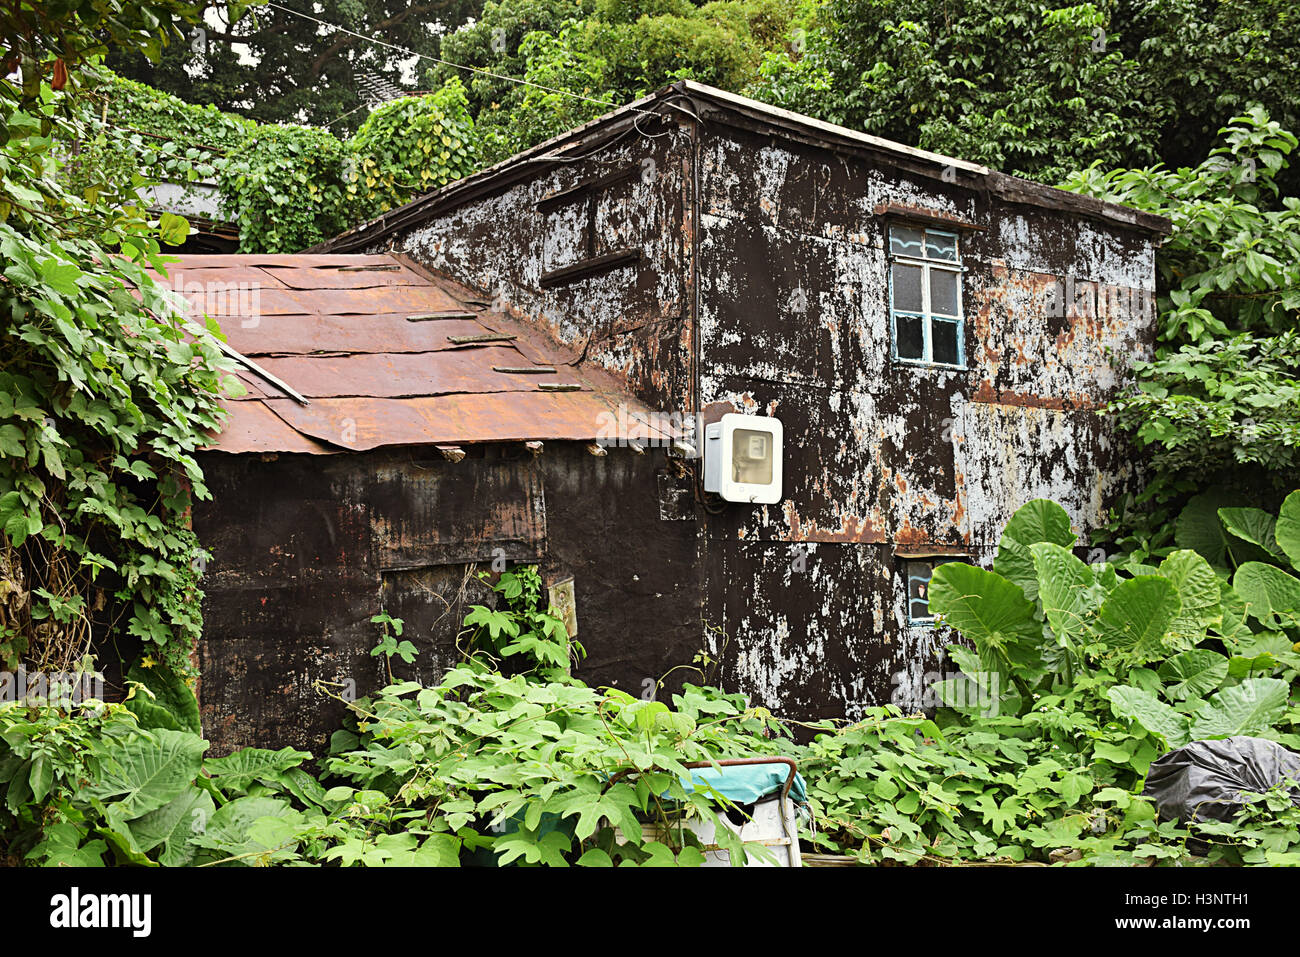 Old abandoned house in the woods in Tai O fishing village, Lantau island, Hong Kong S.A.R. - Stock Image